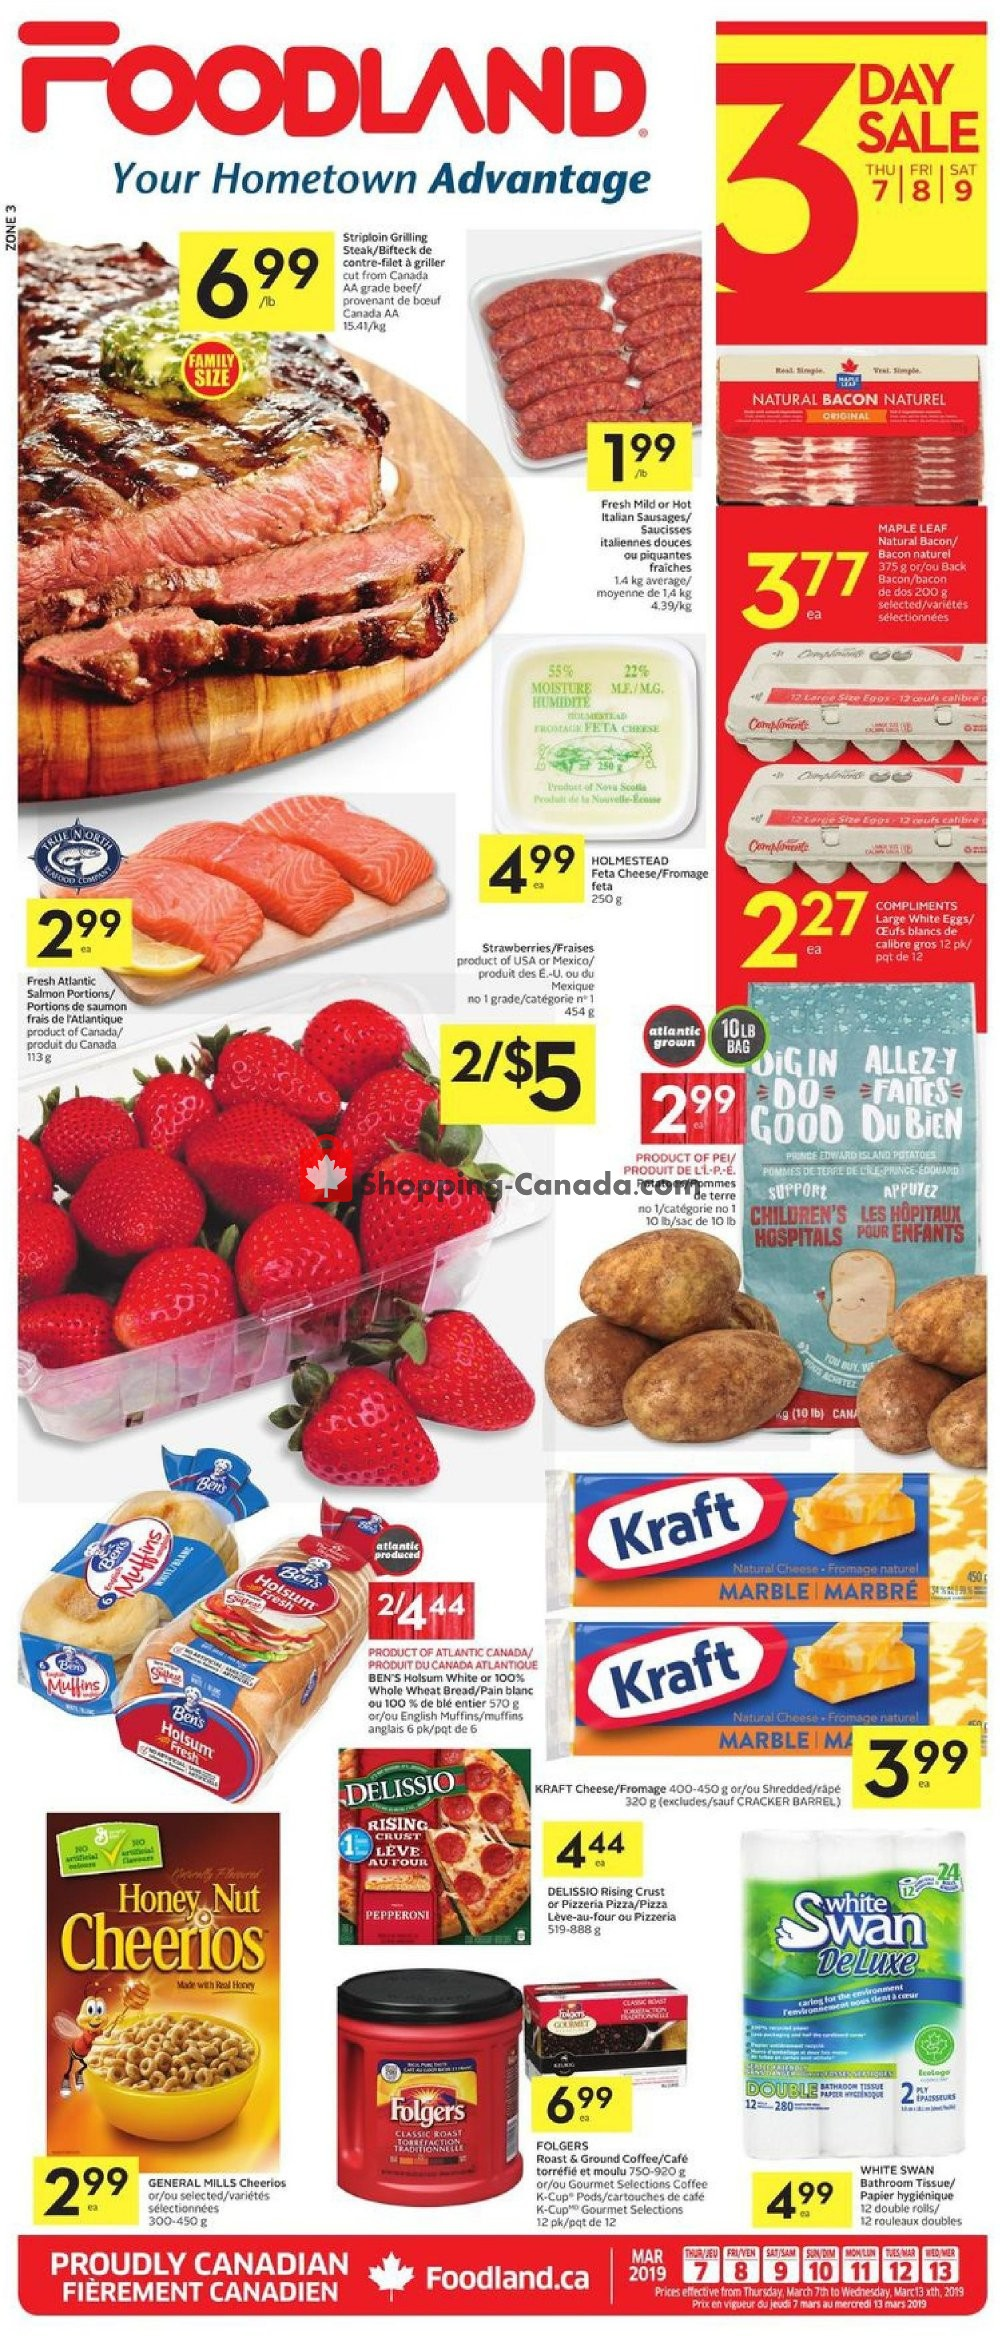 Flyer Foodland Canada - from Thursday March 7, 2019 to Wednesday March 13, 2019